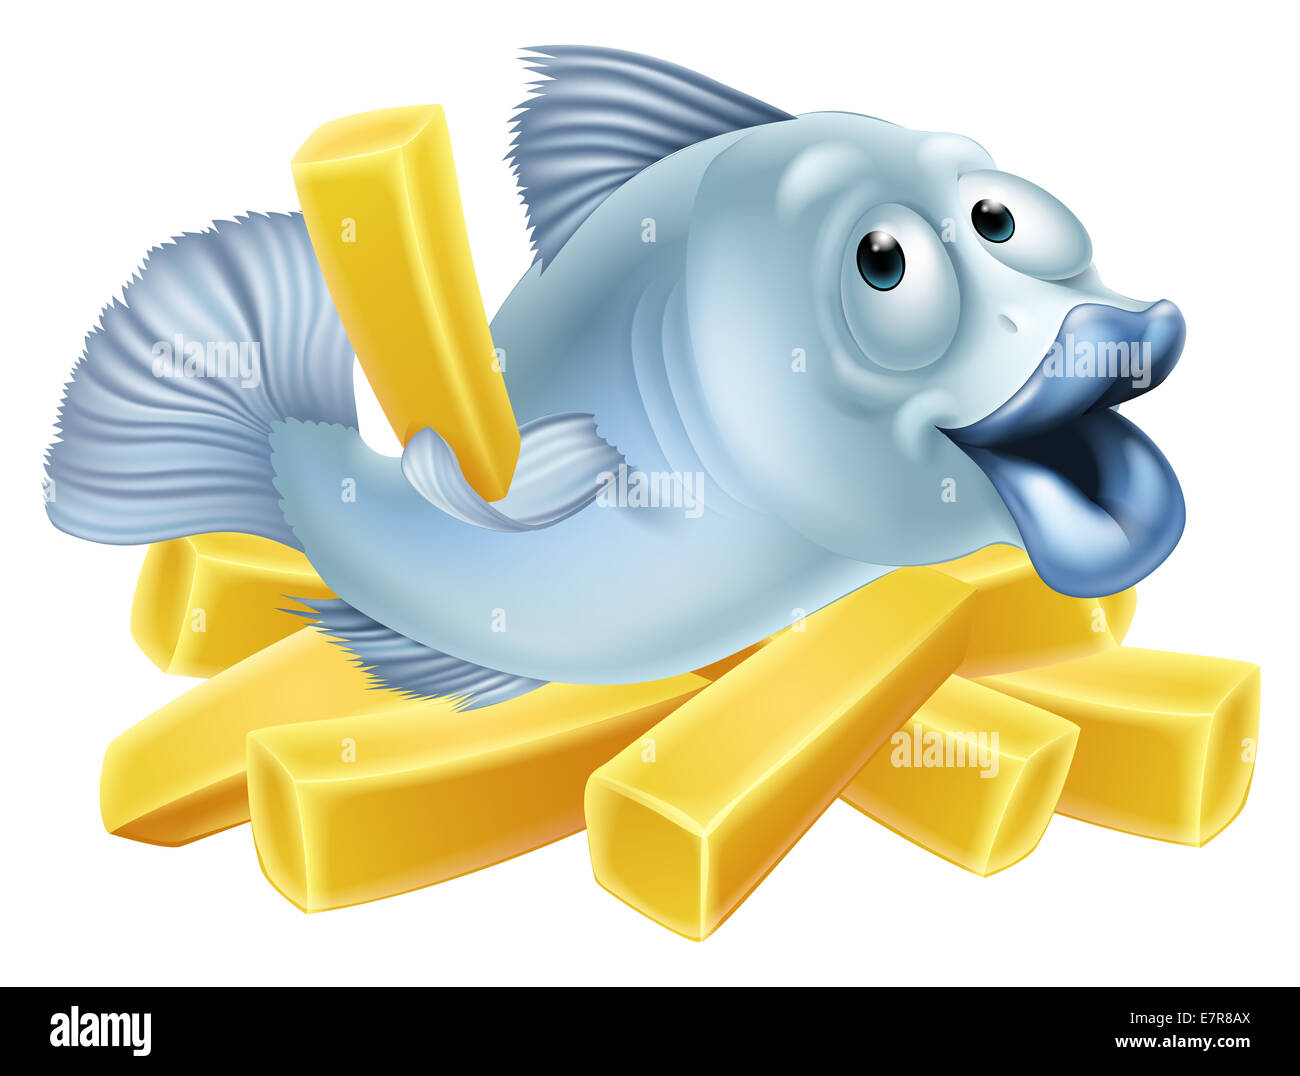 fish and chips illustration of a happy fish character lying n chips rh alamy com fish and chips cartoon wiki fish and chips cartoon images